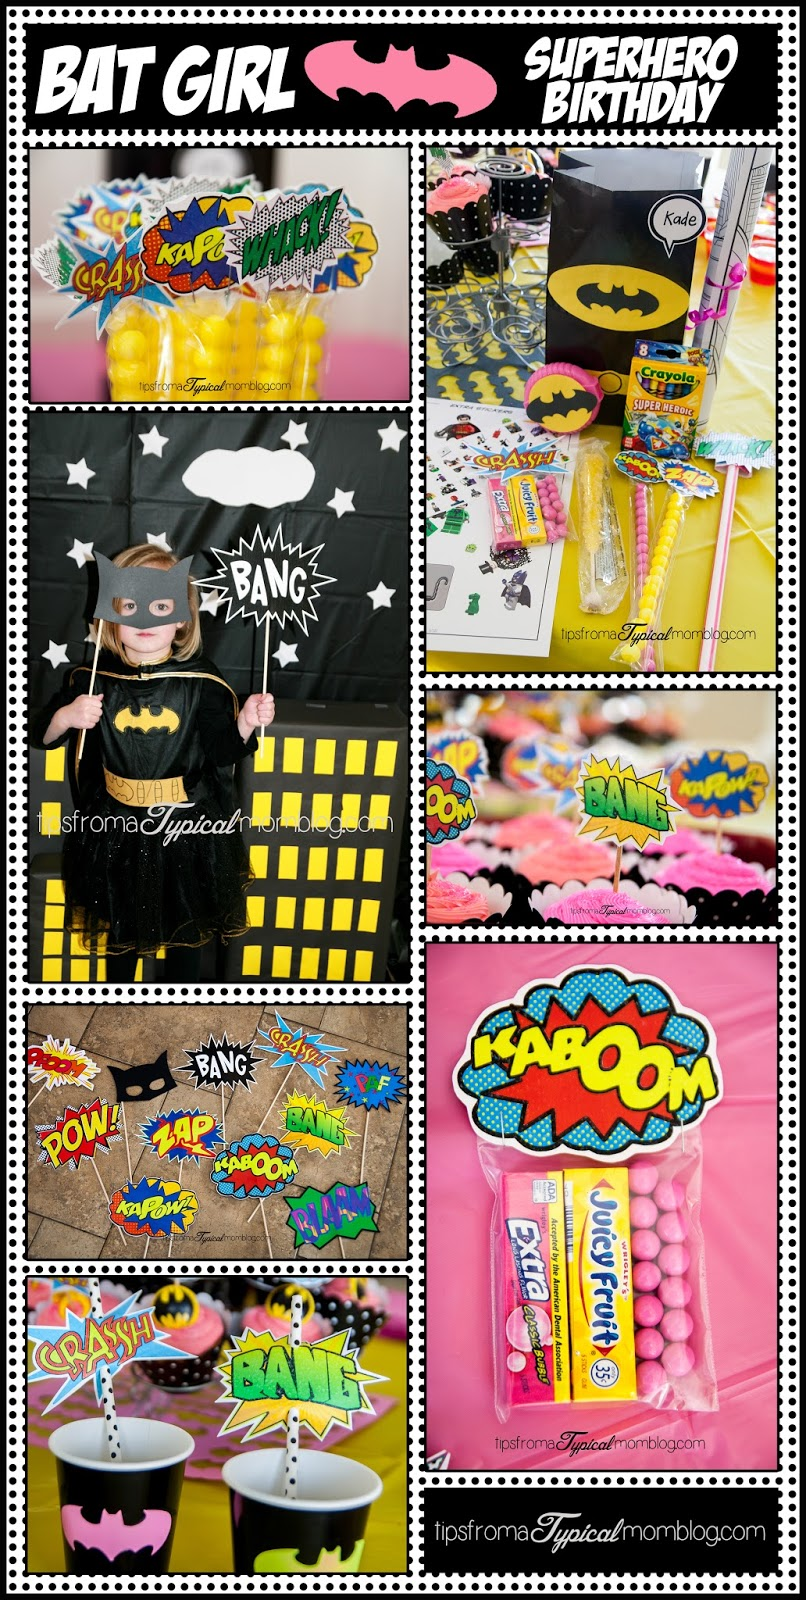 Superhero Girl Birthday Party Ideas and Free Printables  Tips from a